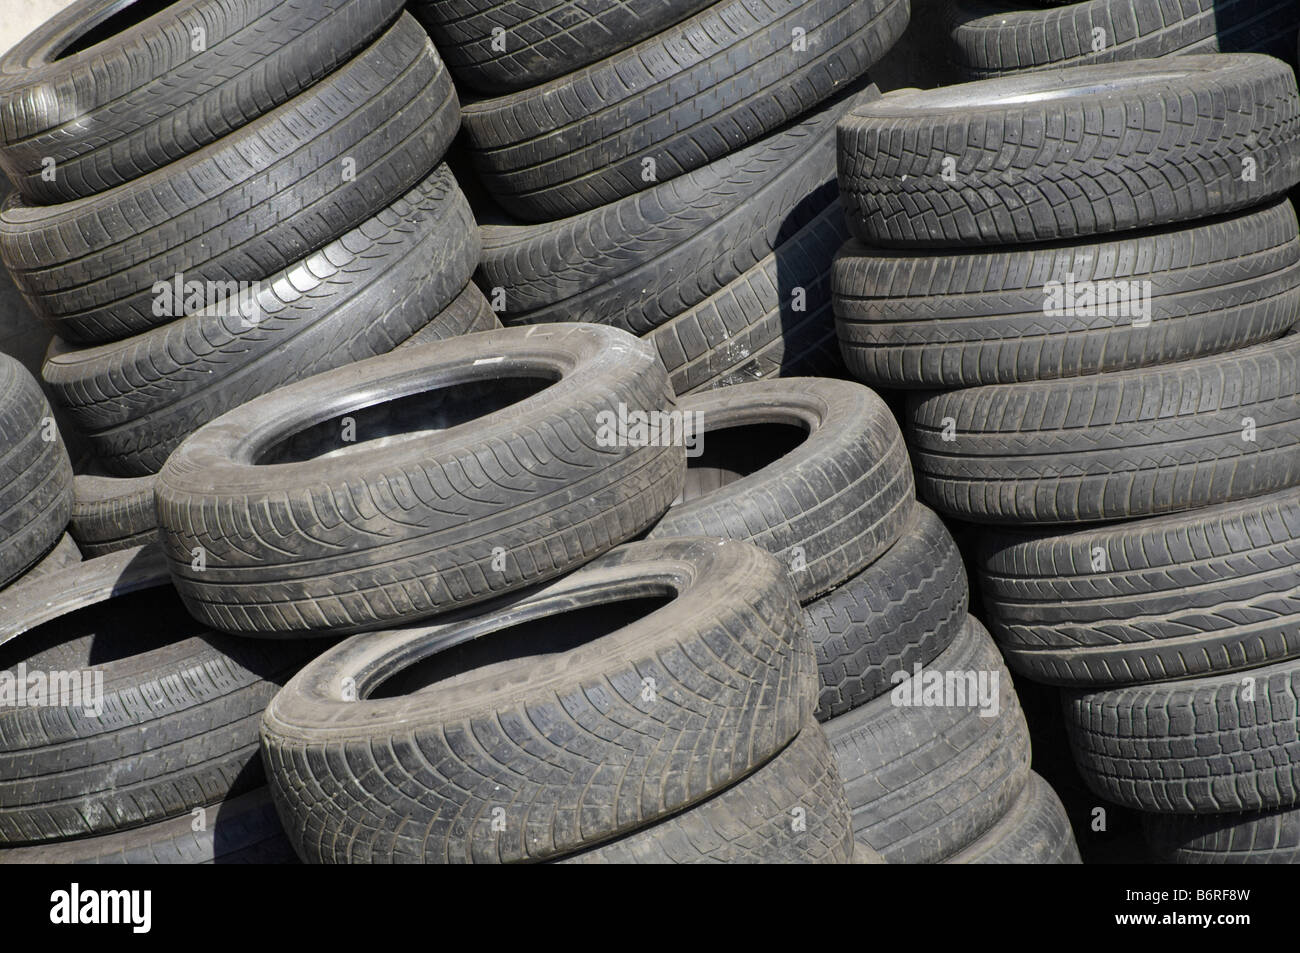 pile of used tyres - Stock Image